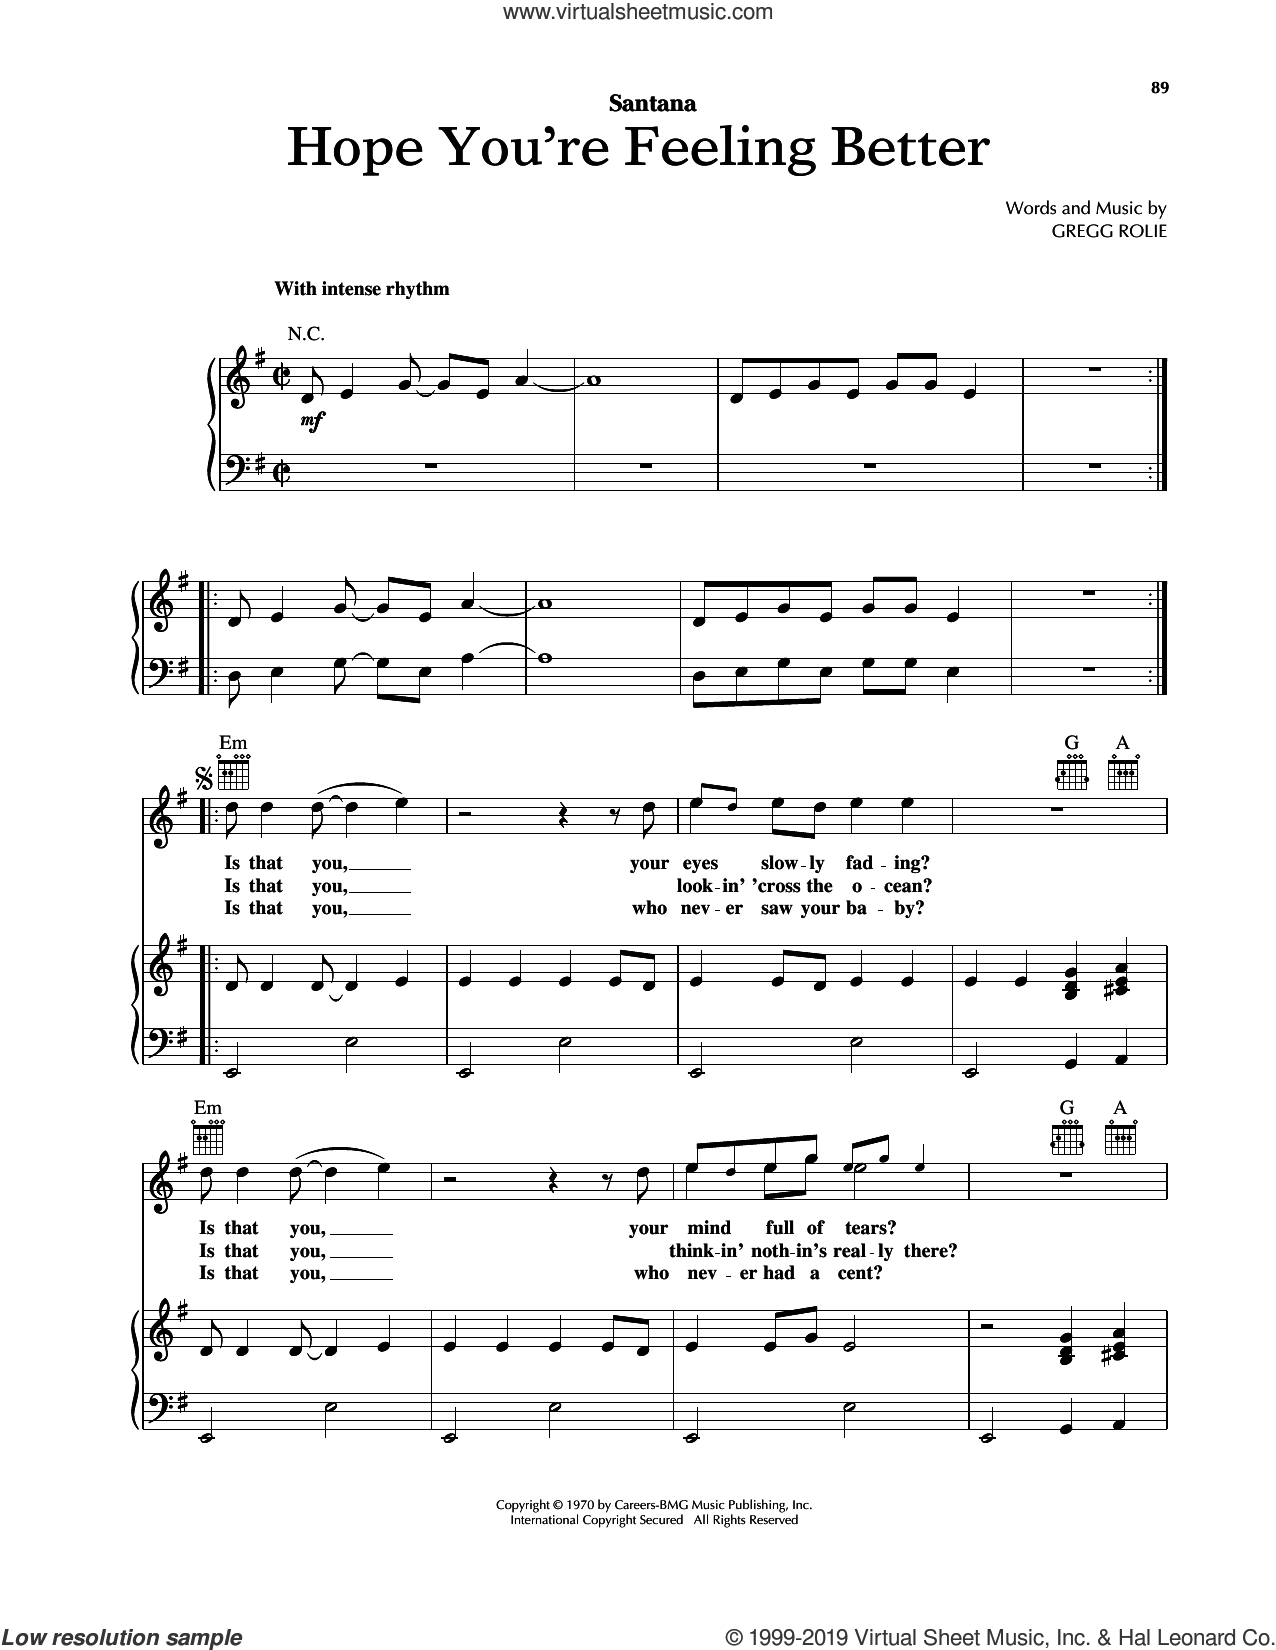 Hope You're Feeling Better sheet music for voice, piano or guitar by Carlos Santana and Gregg Rolie, intermediate skill level